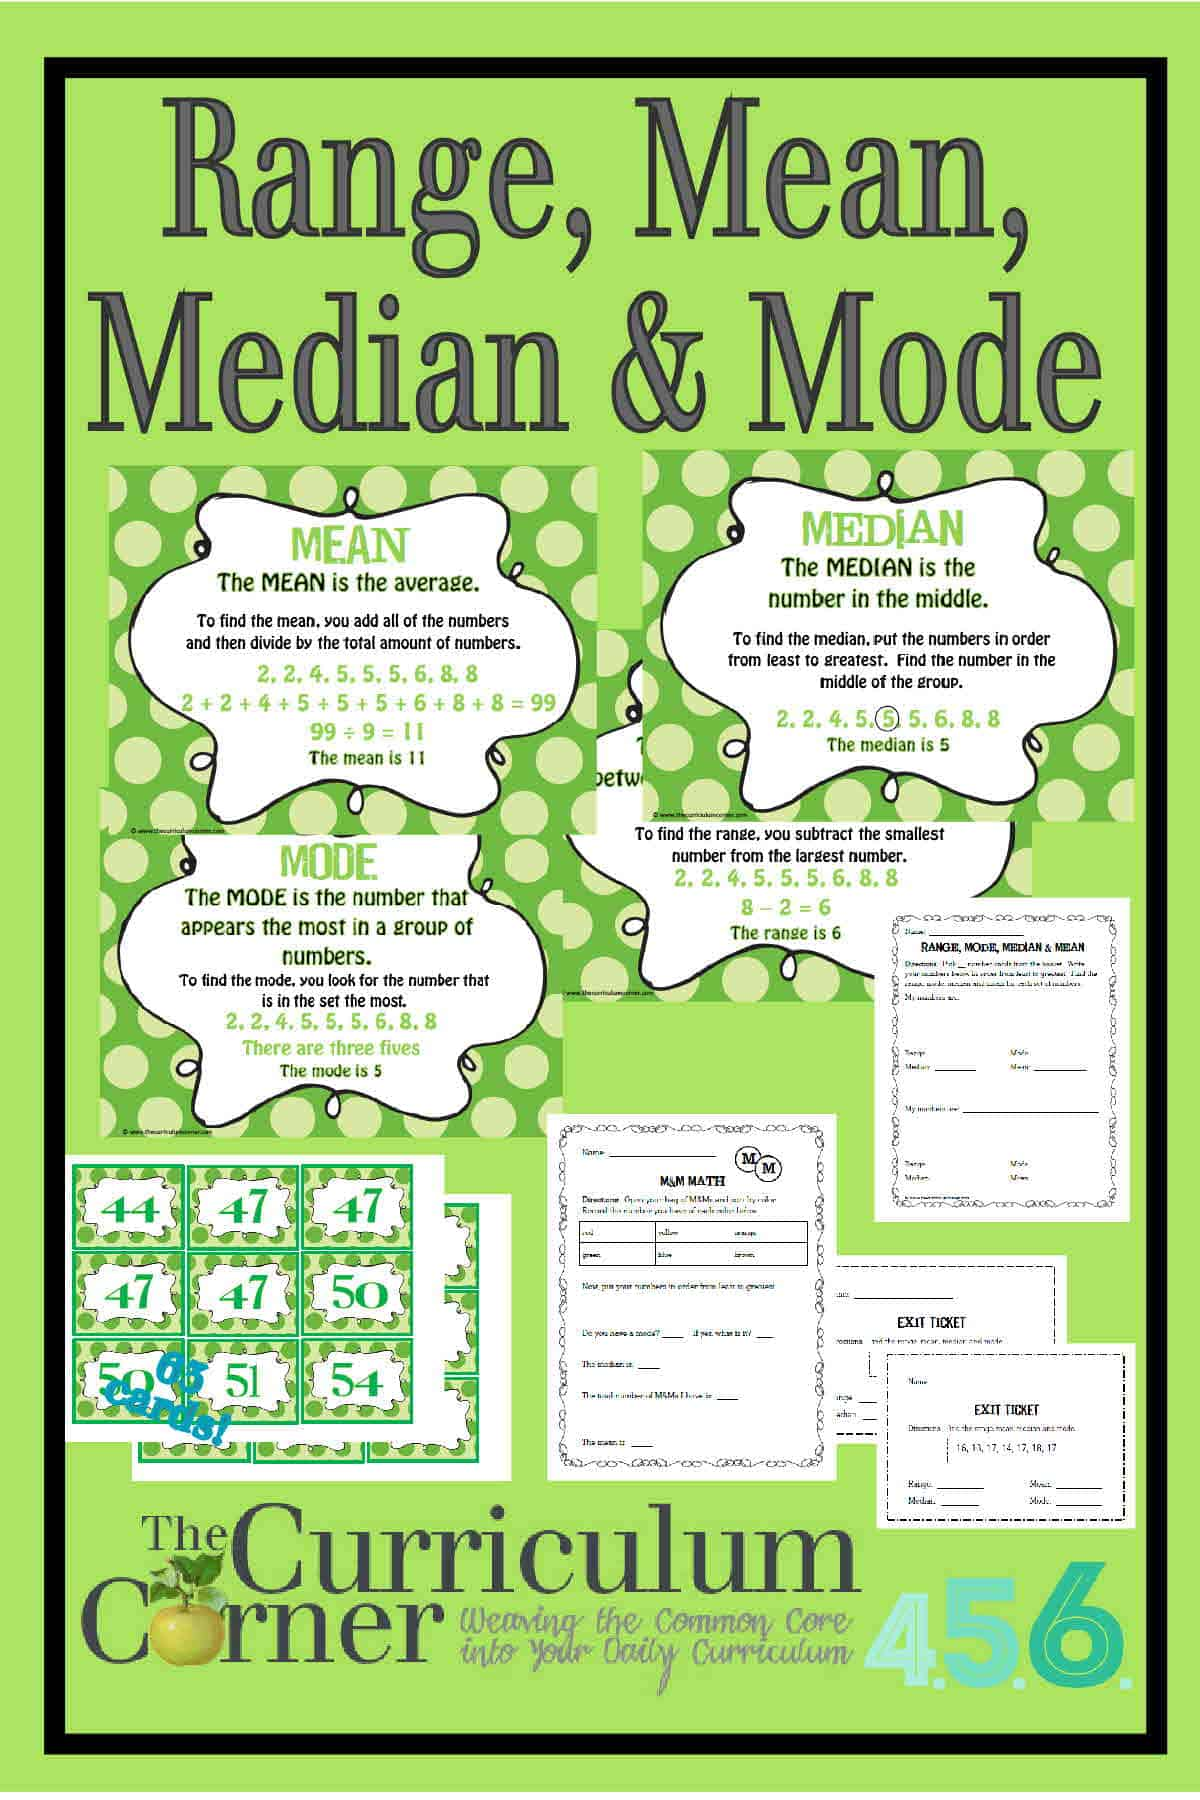 range median mode mean the curriculum corner 4 5 6